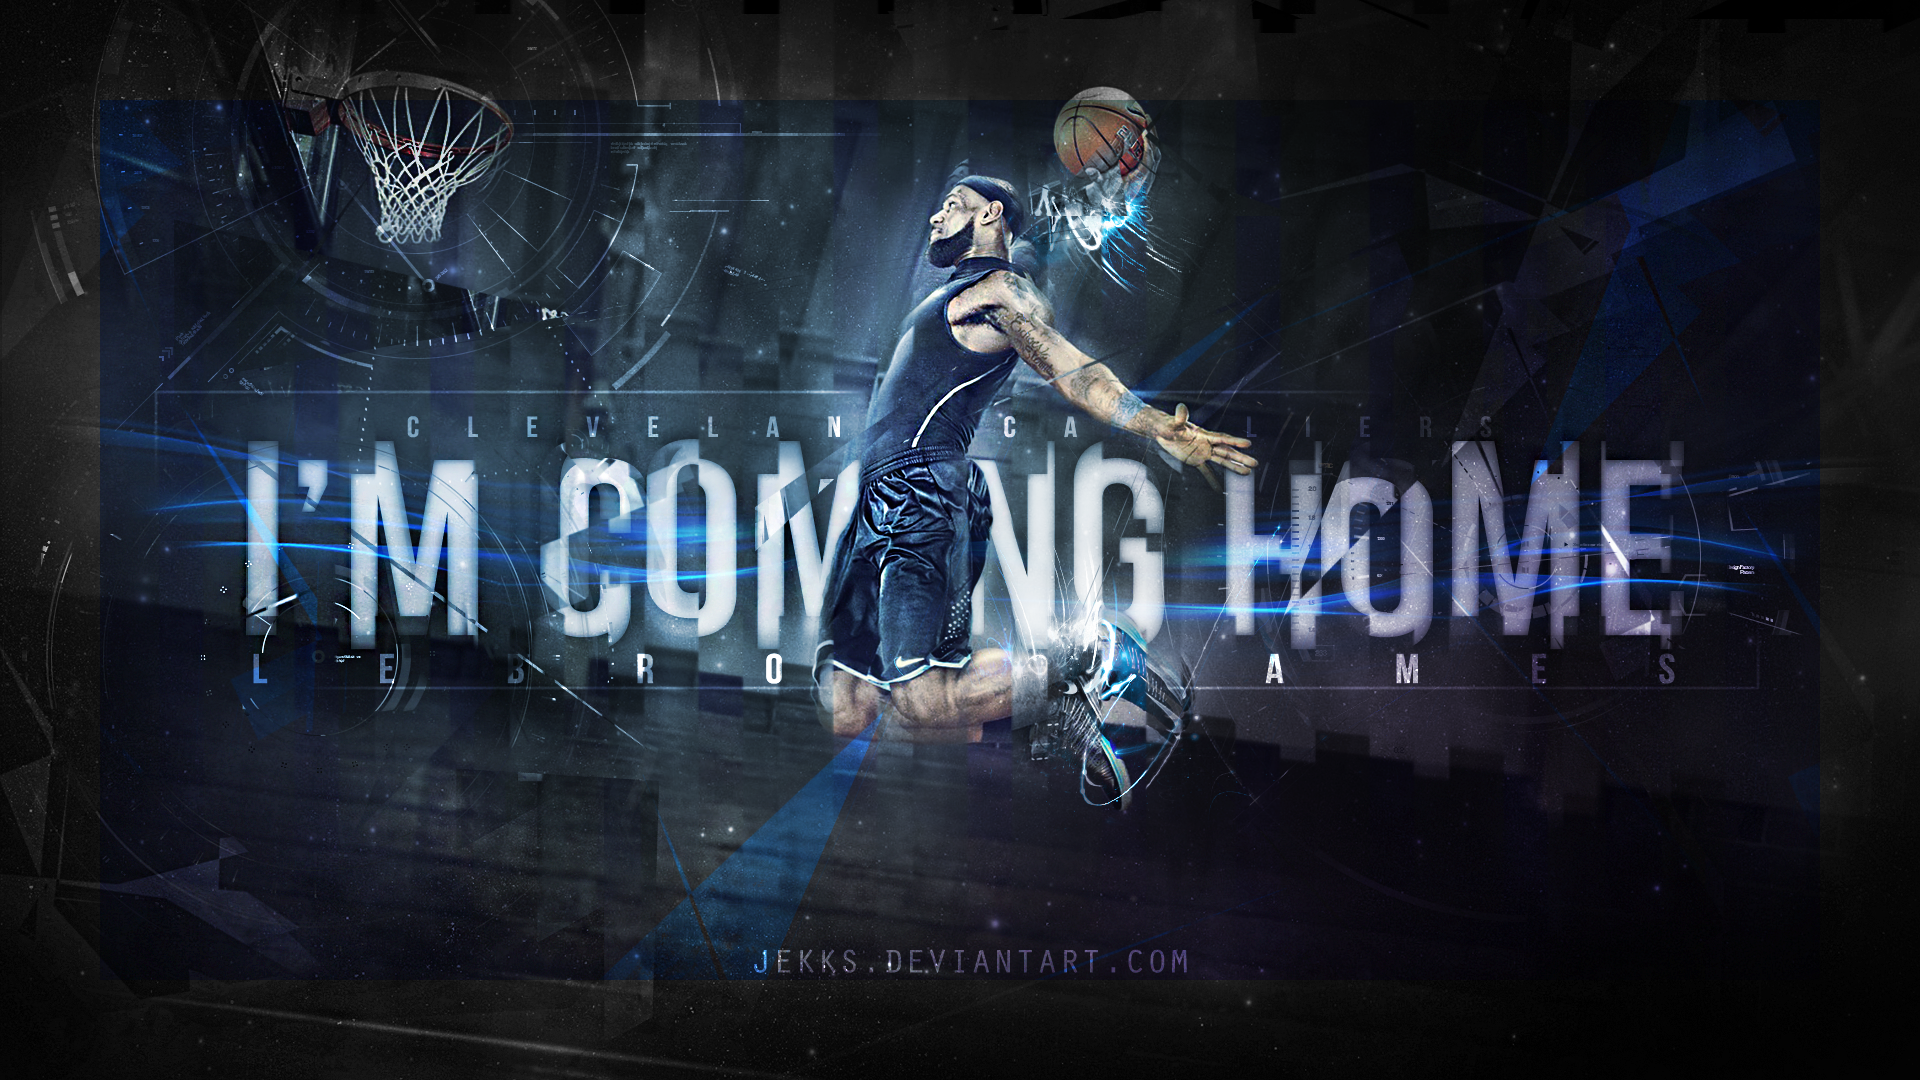 LEBRON JAMES   IM COMING HOME   CAVALIERS by Jekks 1920x1080